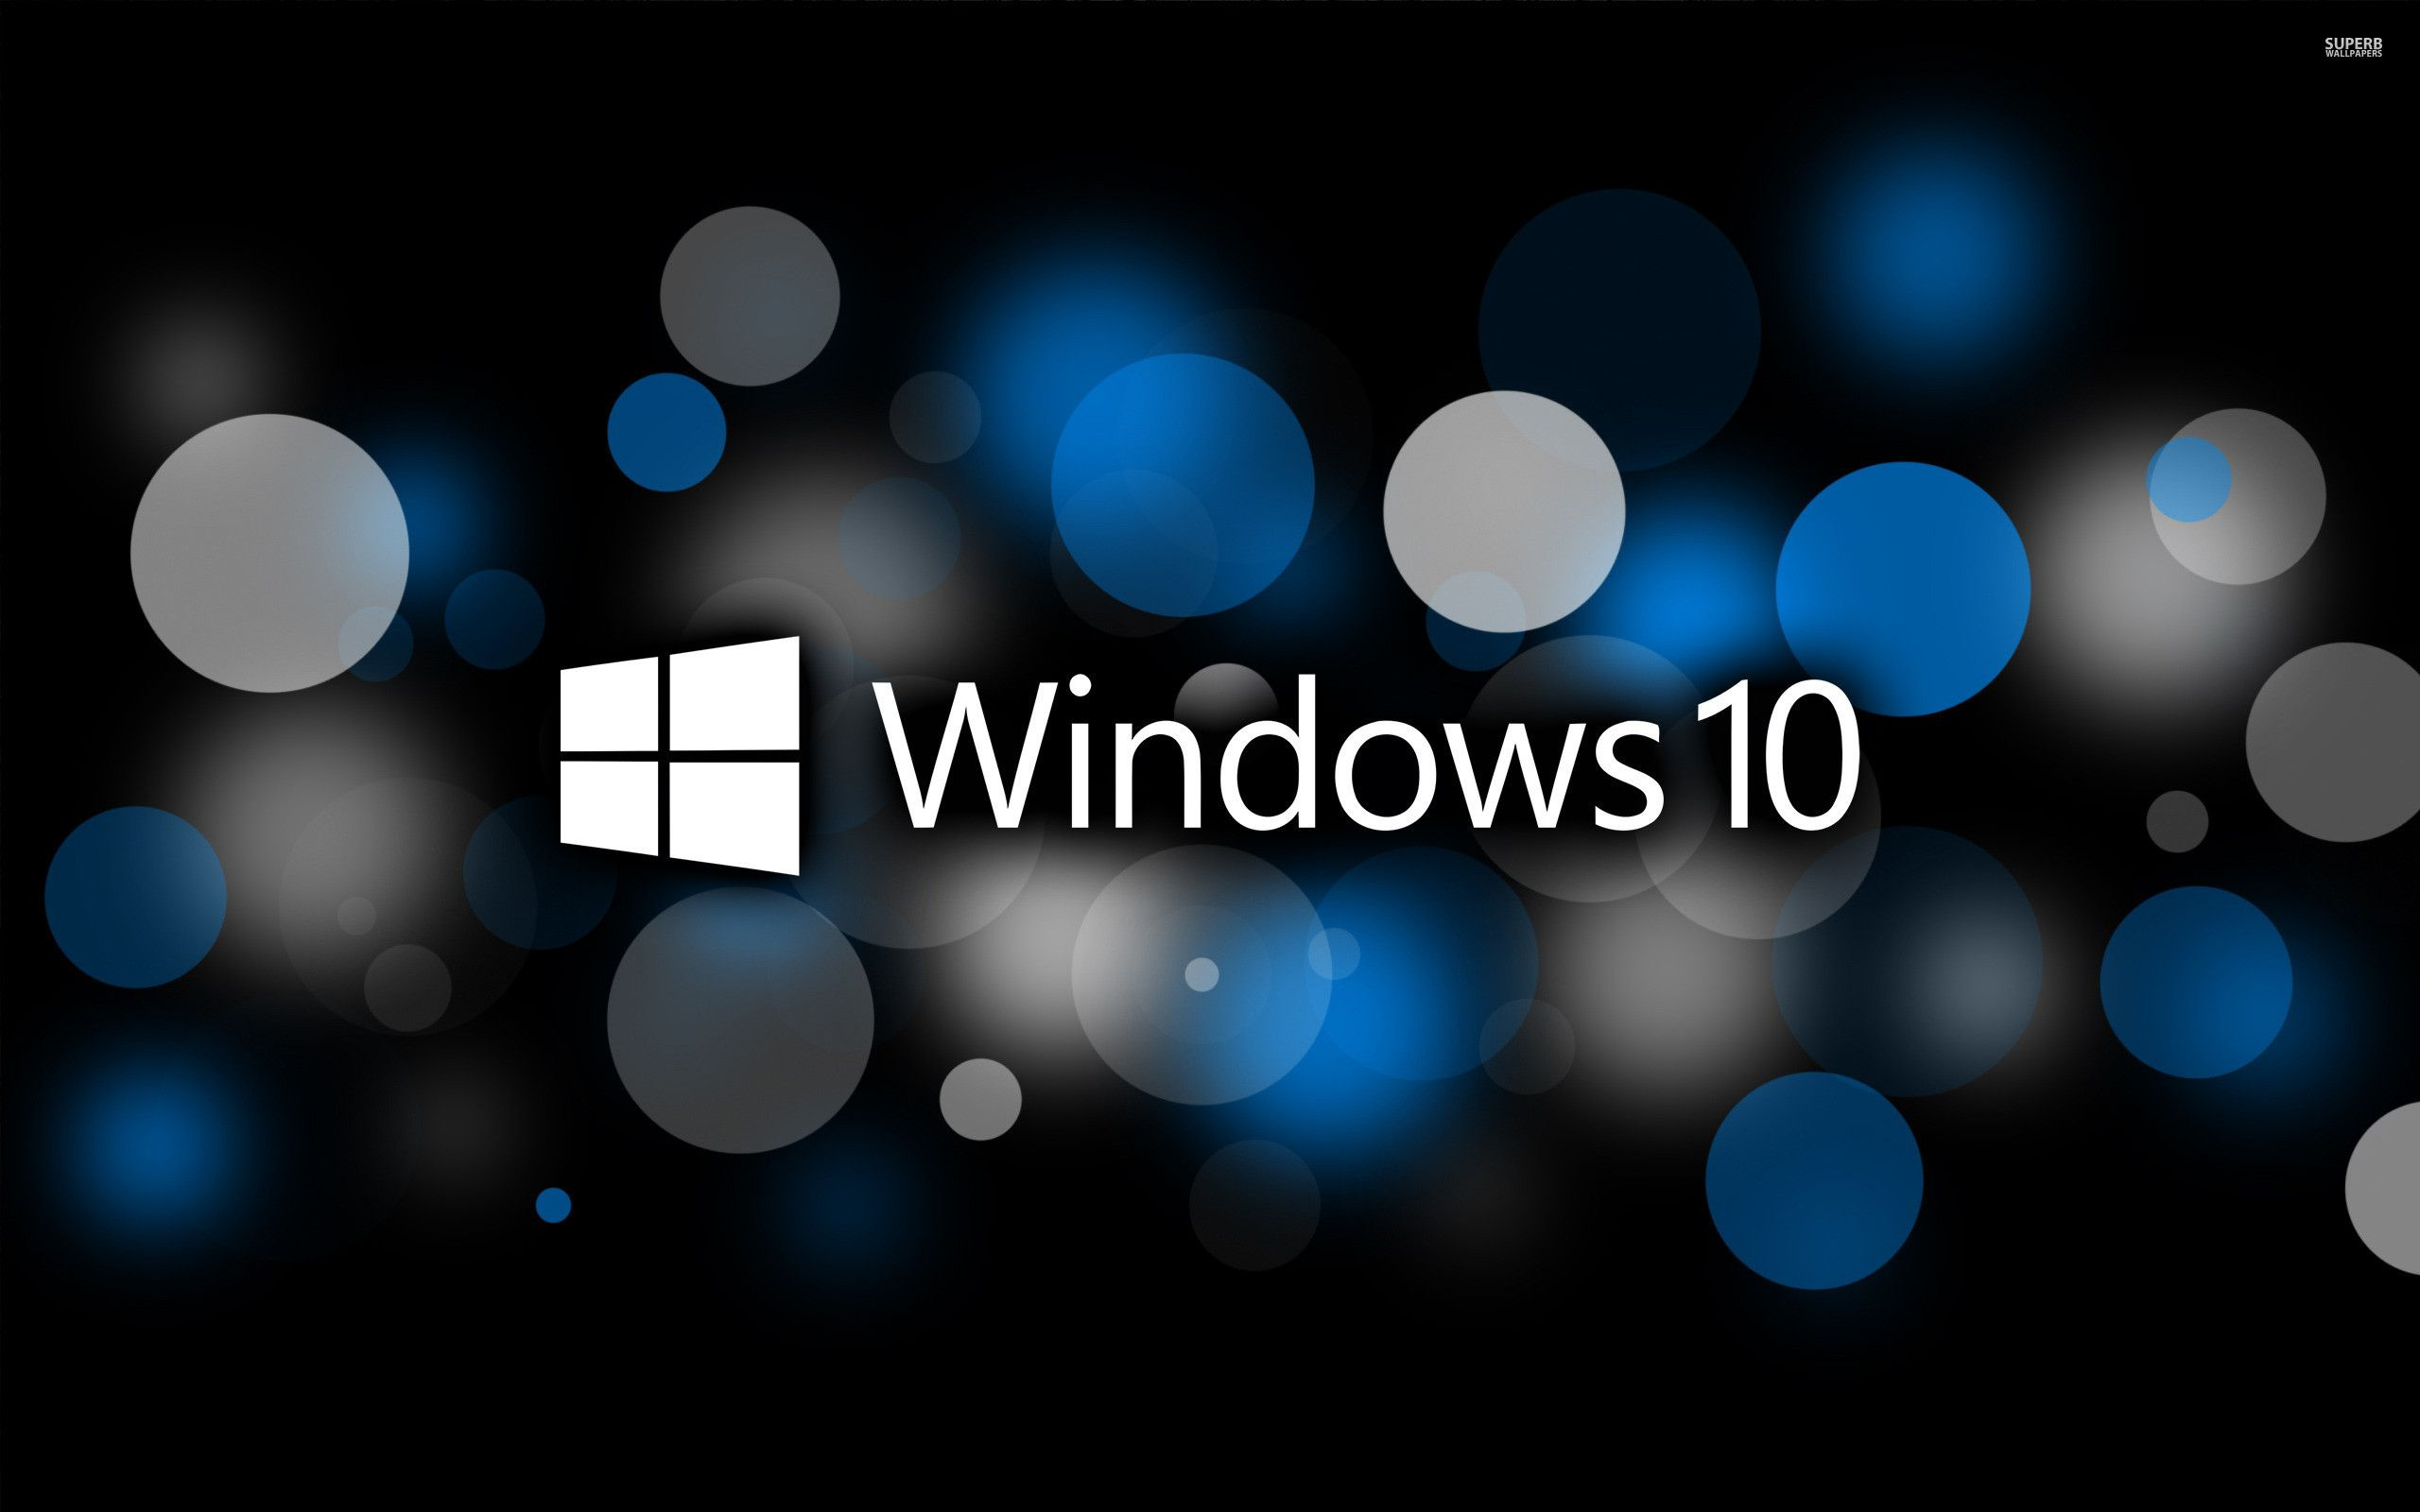 Wallpaper Hd Windows 10 Logo In 2020 Wallpaper Windows 10 Windows 10 Windows 10 Logo